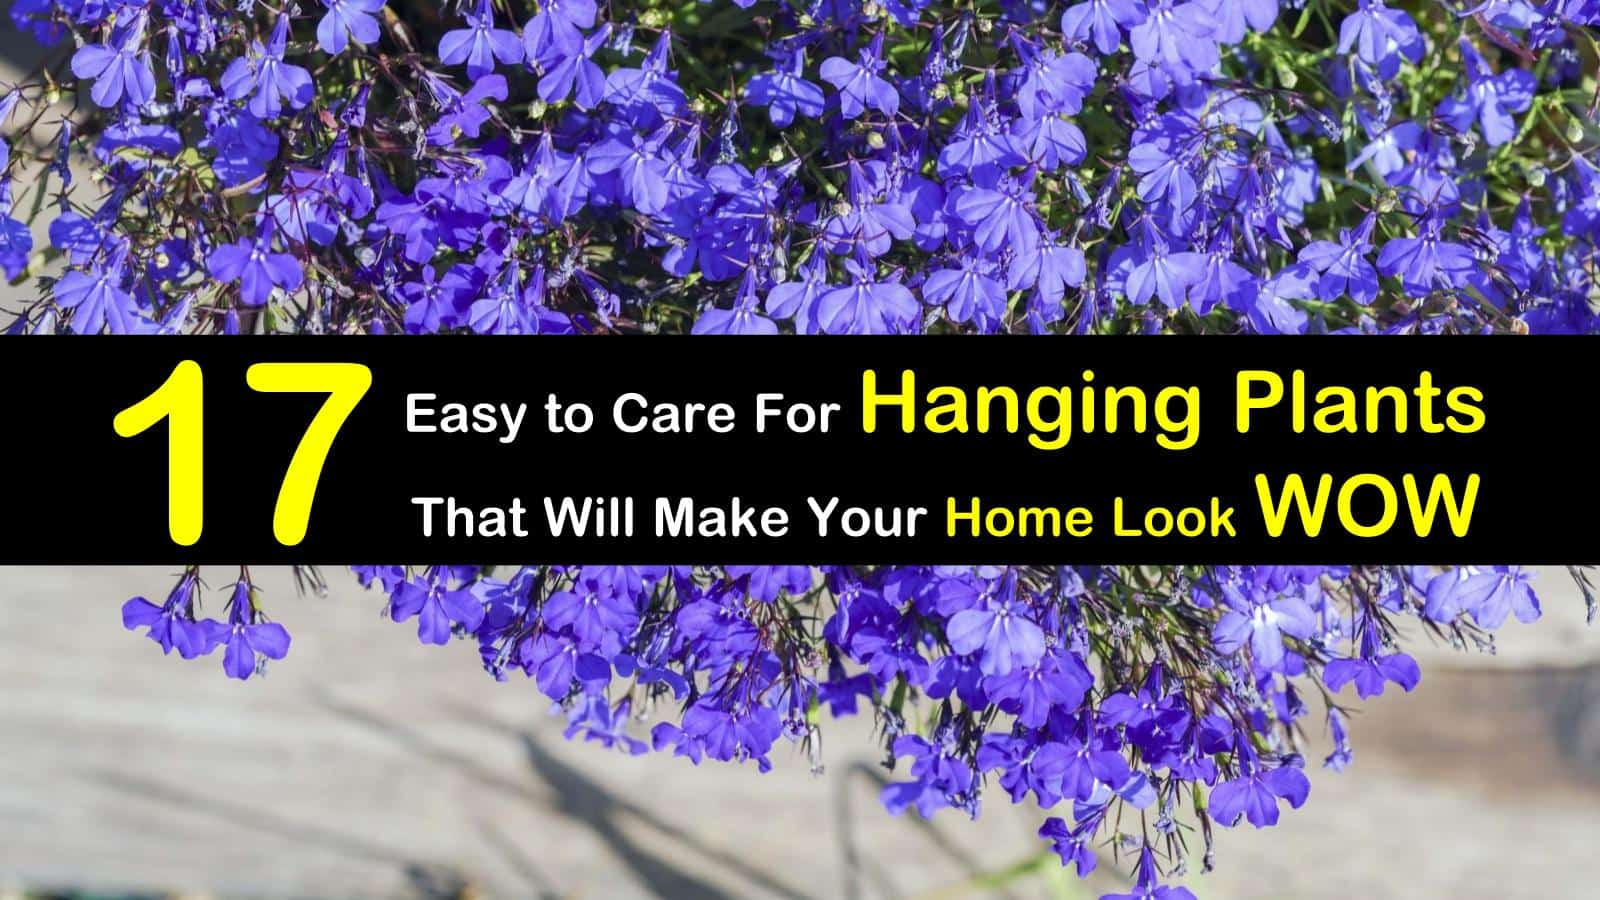 Easy To Care For Houseplants 17 Easy To Care For Hanging Plants That Will Make Your